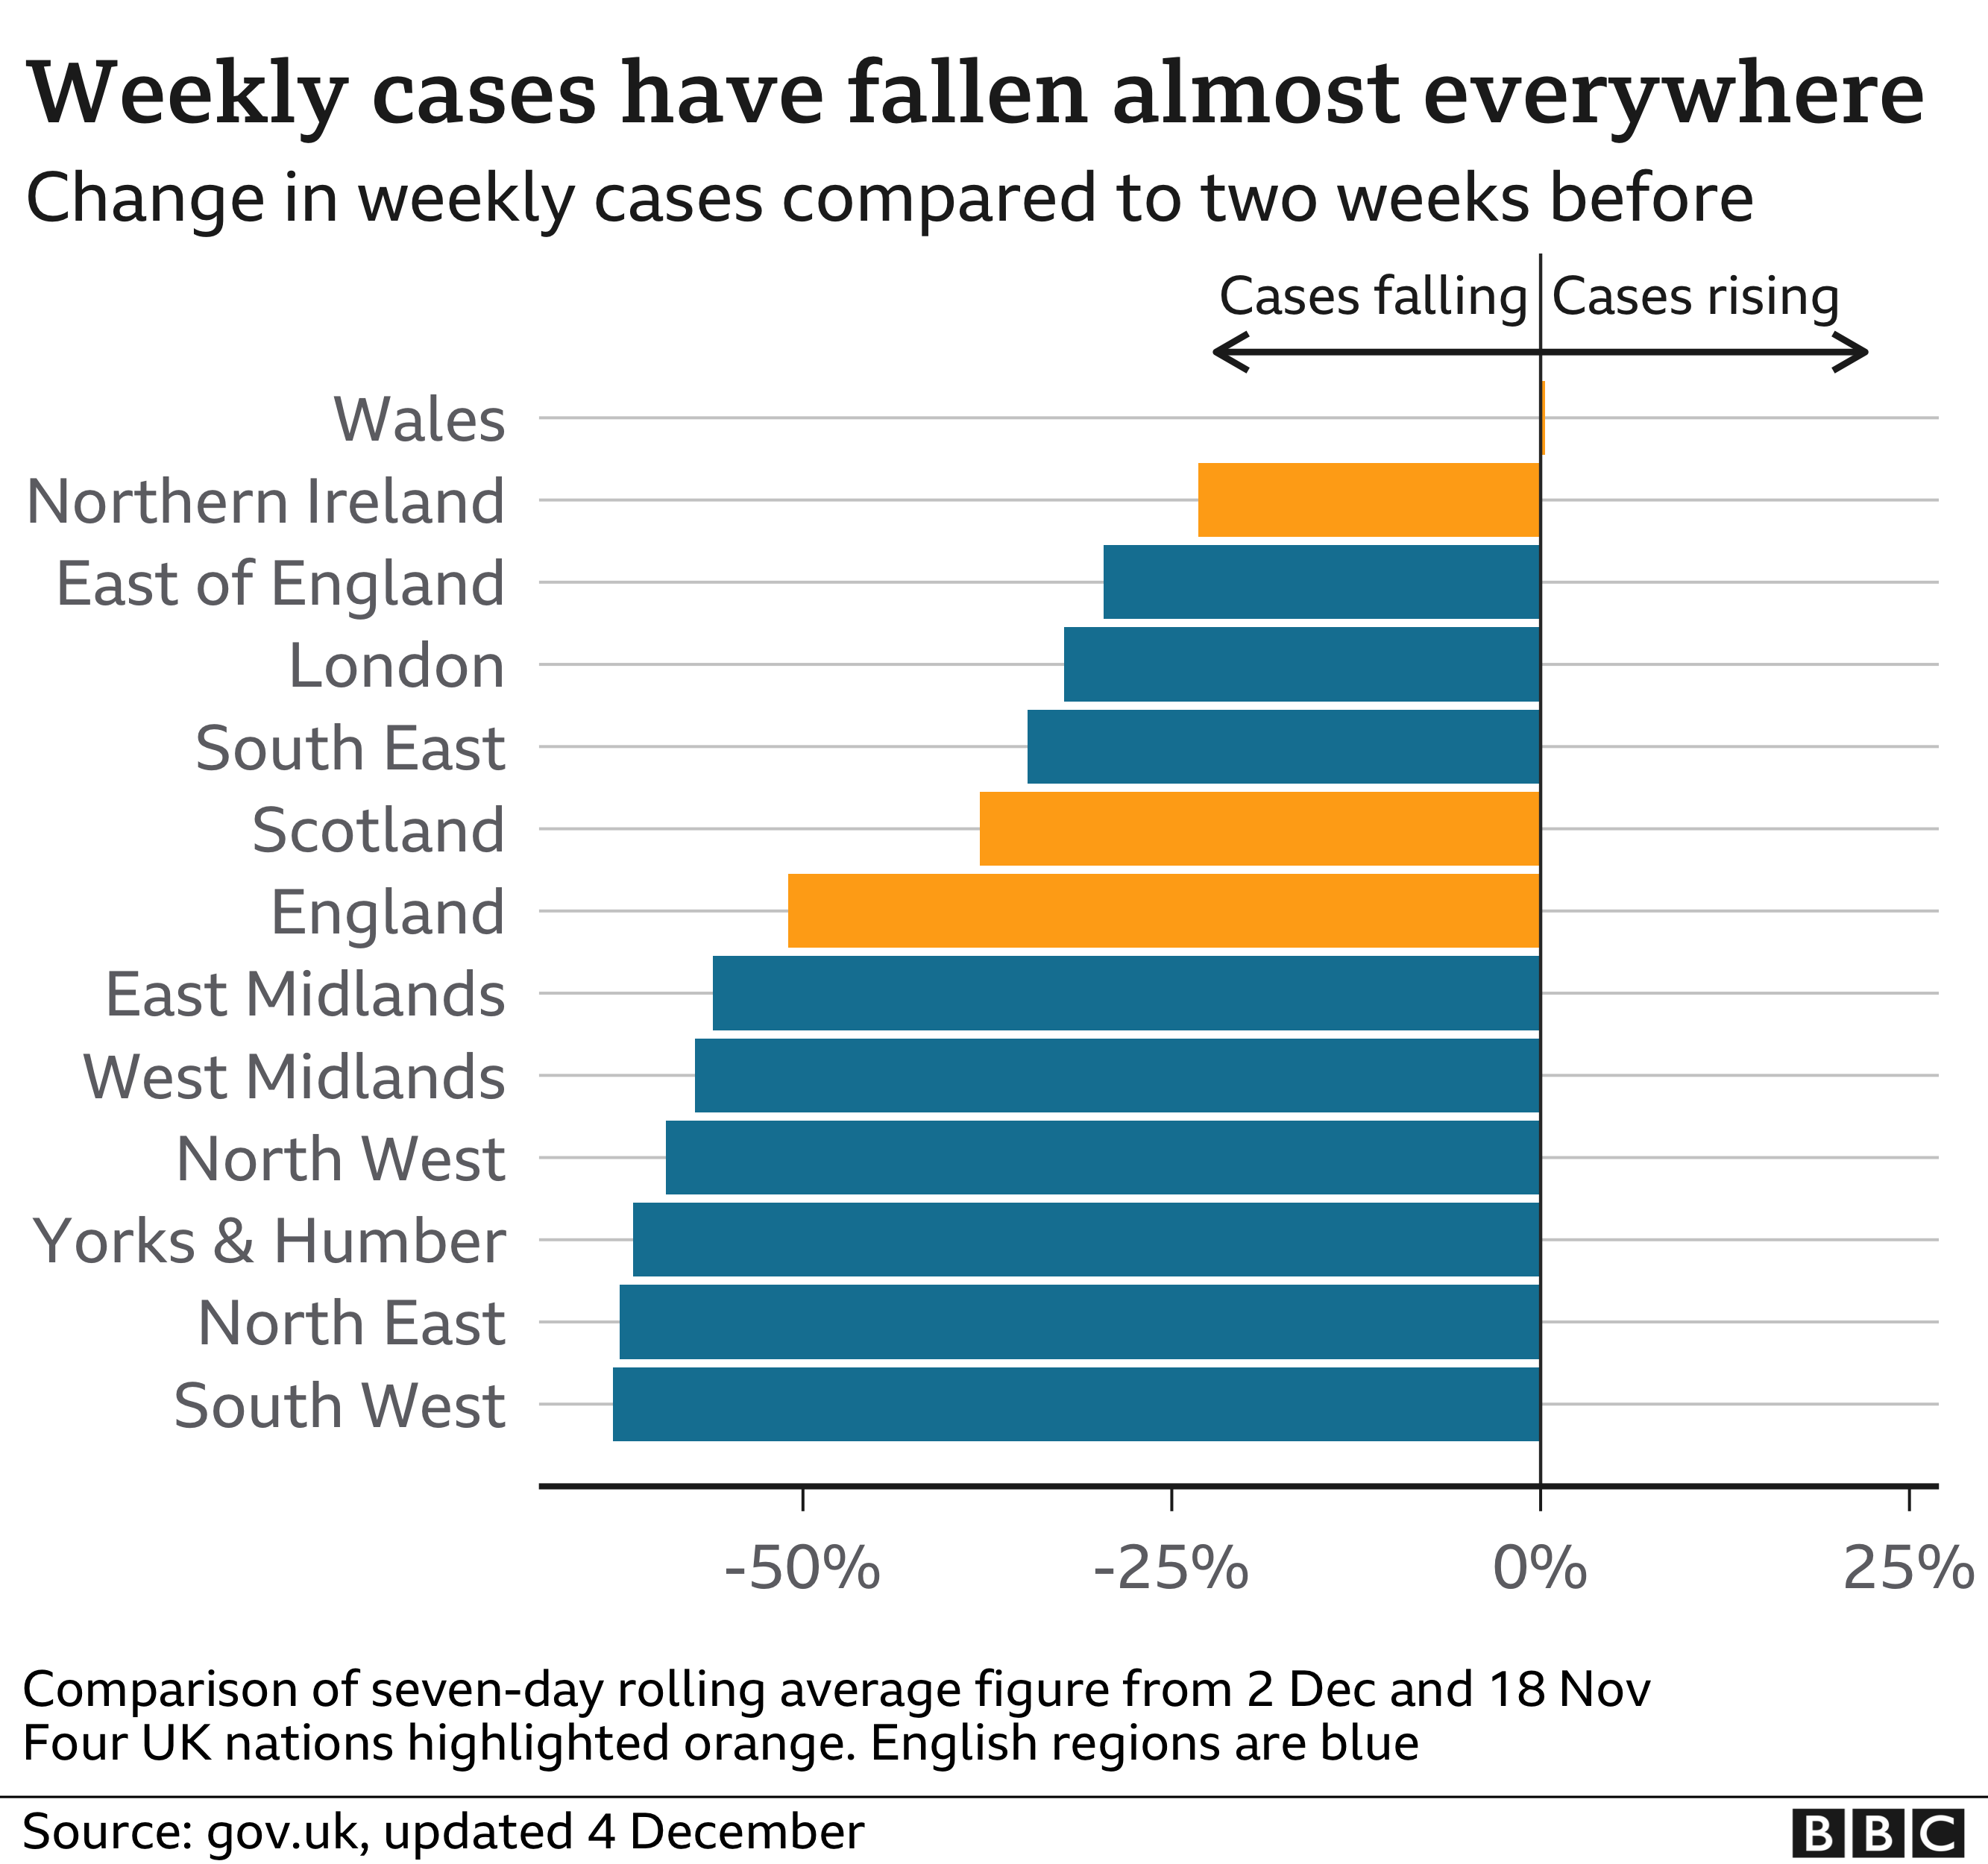 Chart showing how weekly case numbers are falling in most regions